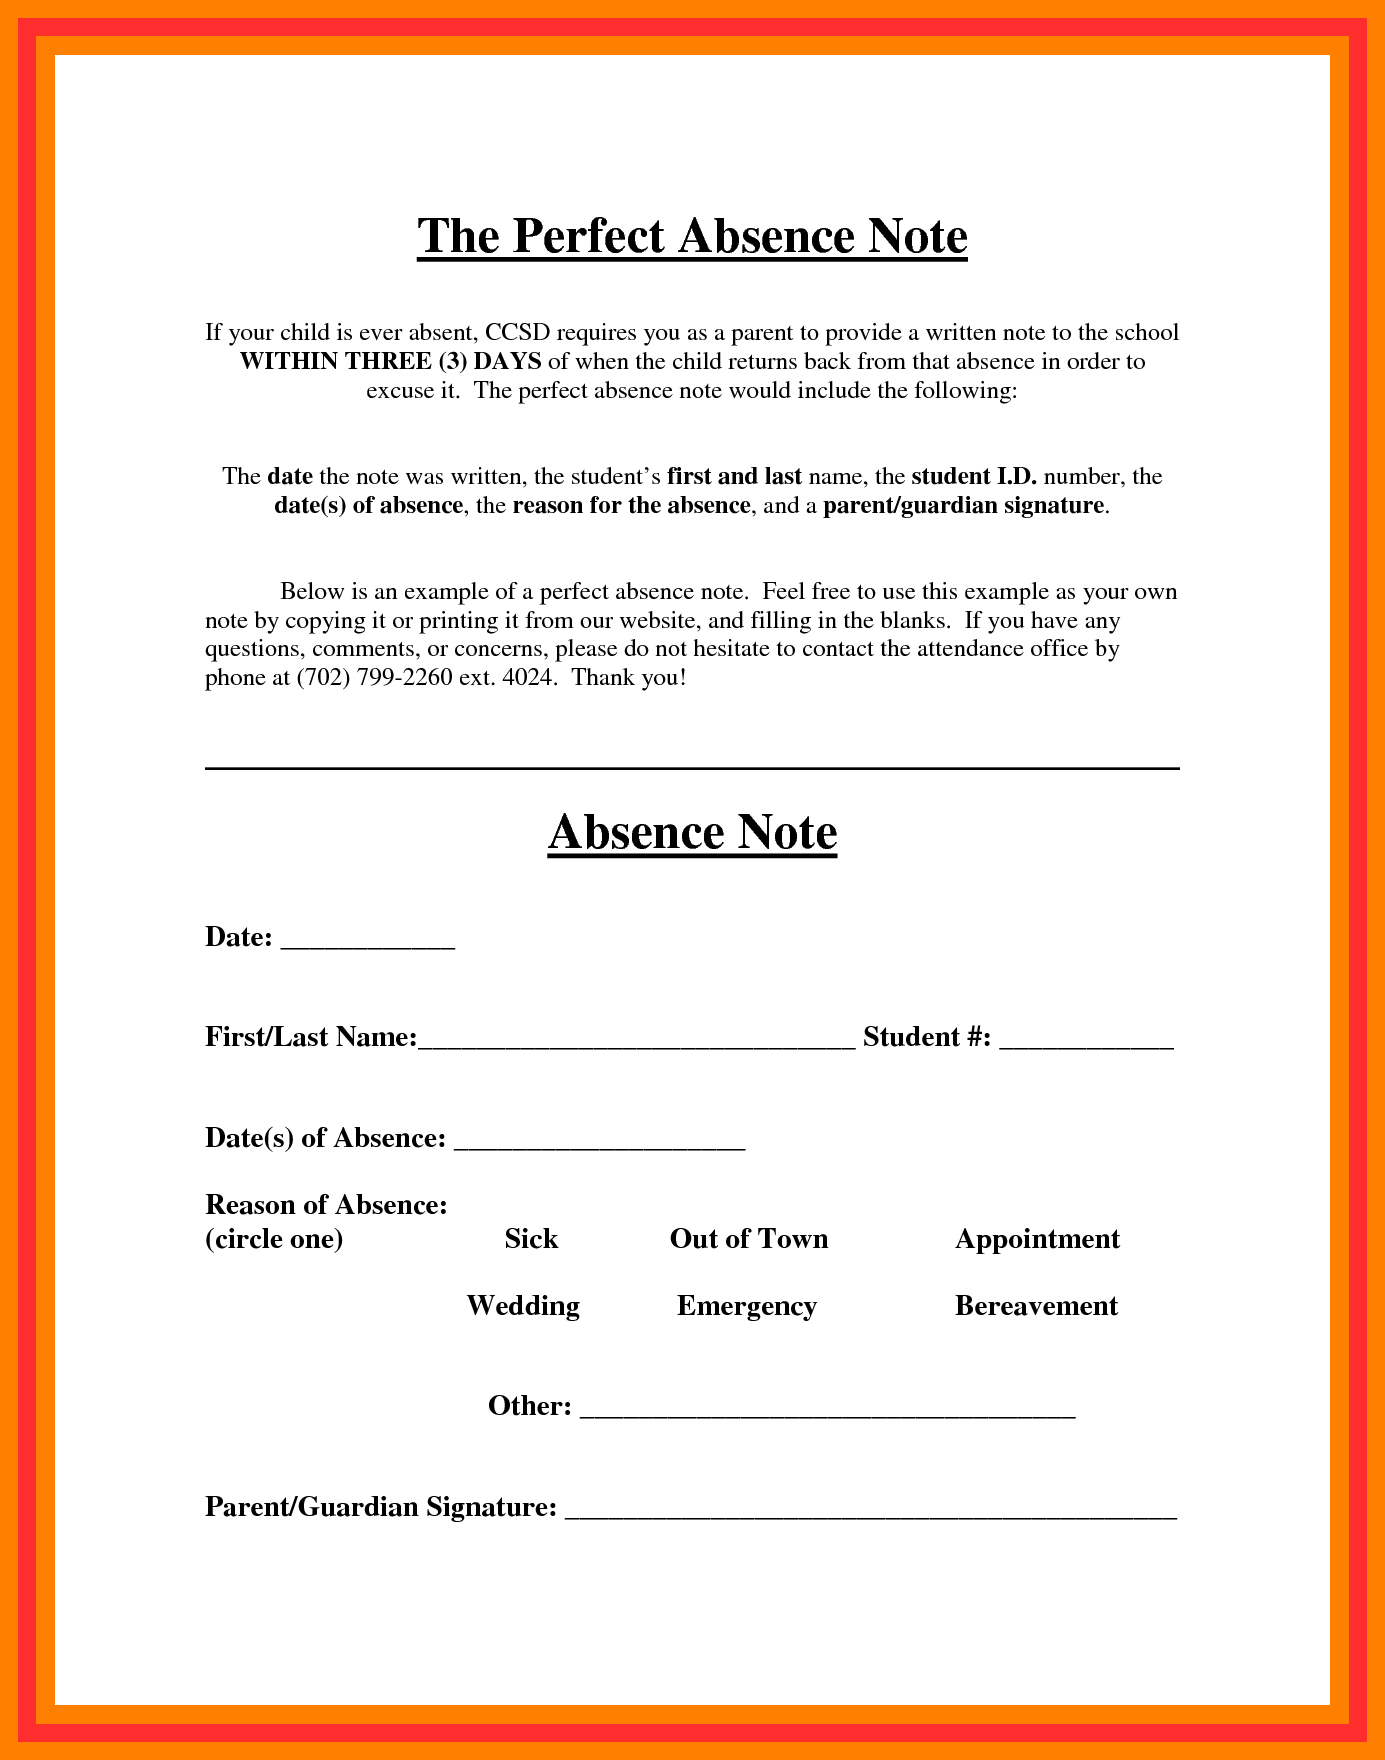 014 Doctorotes For School Templates Template Ideas Dentist Throughout Dentist Note For School Template